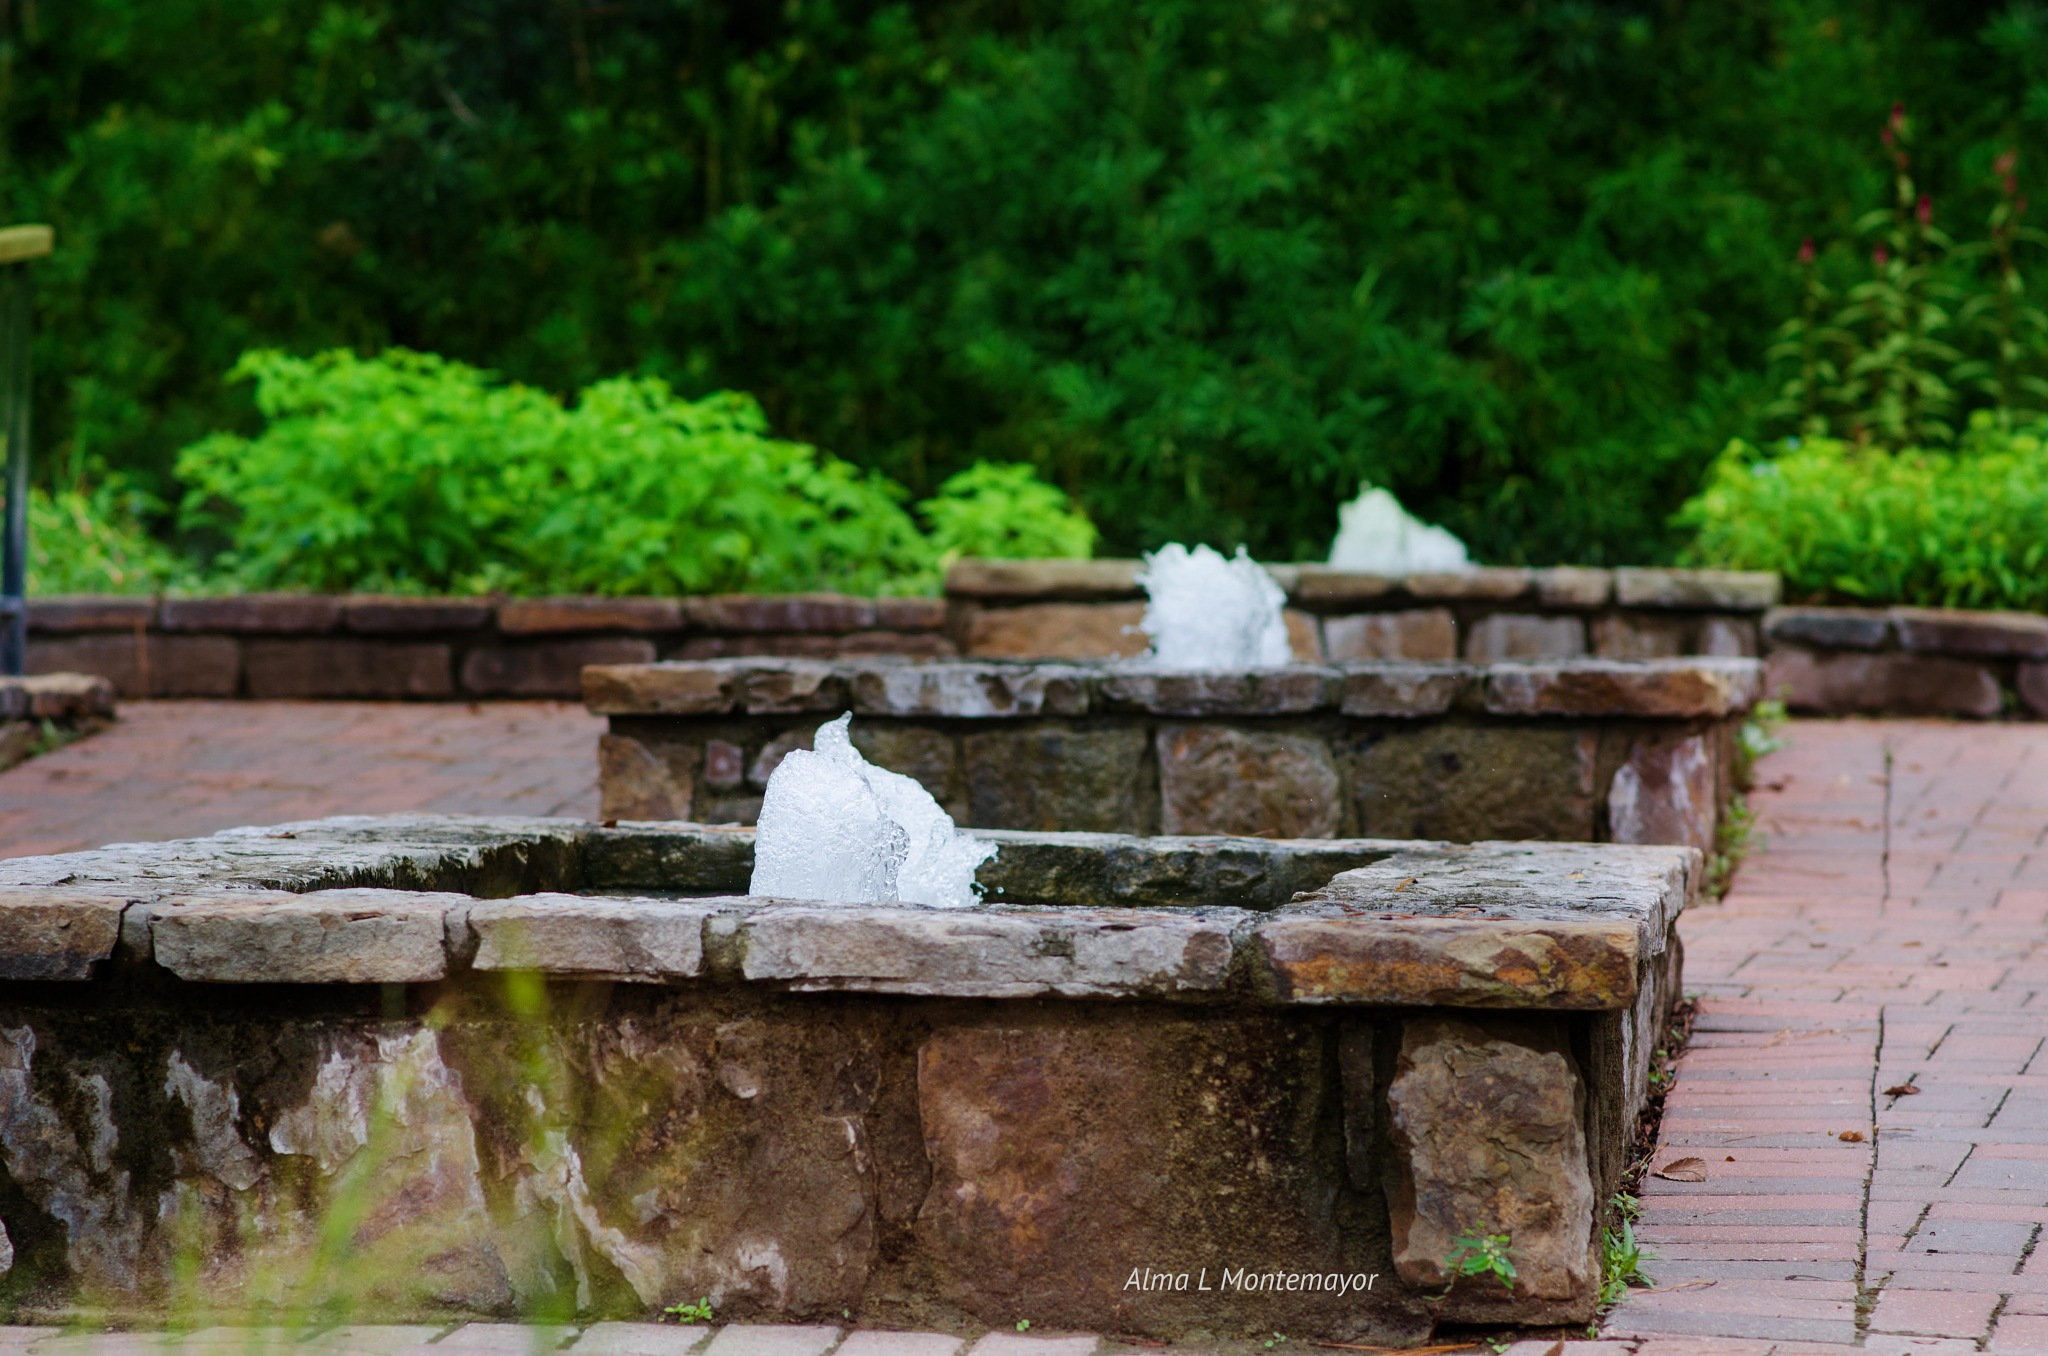 Water fountains by Alma